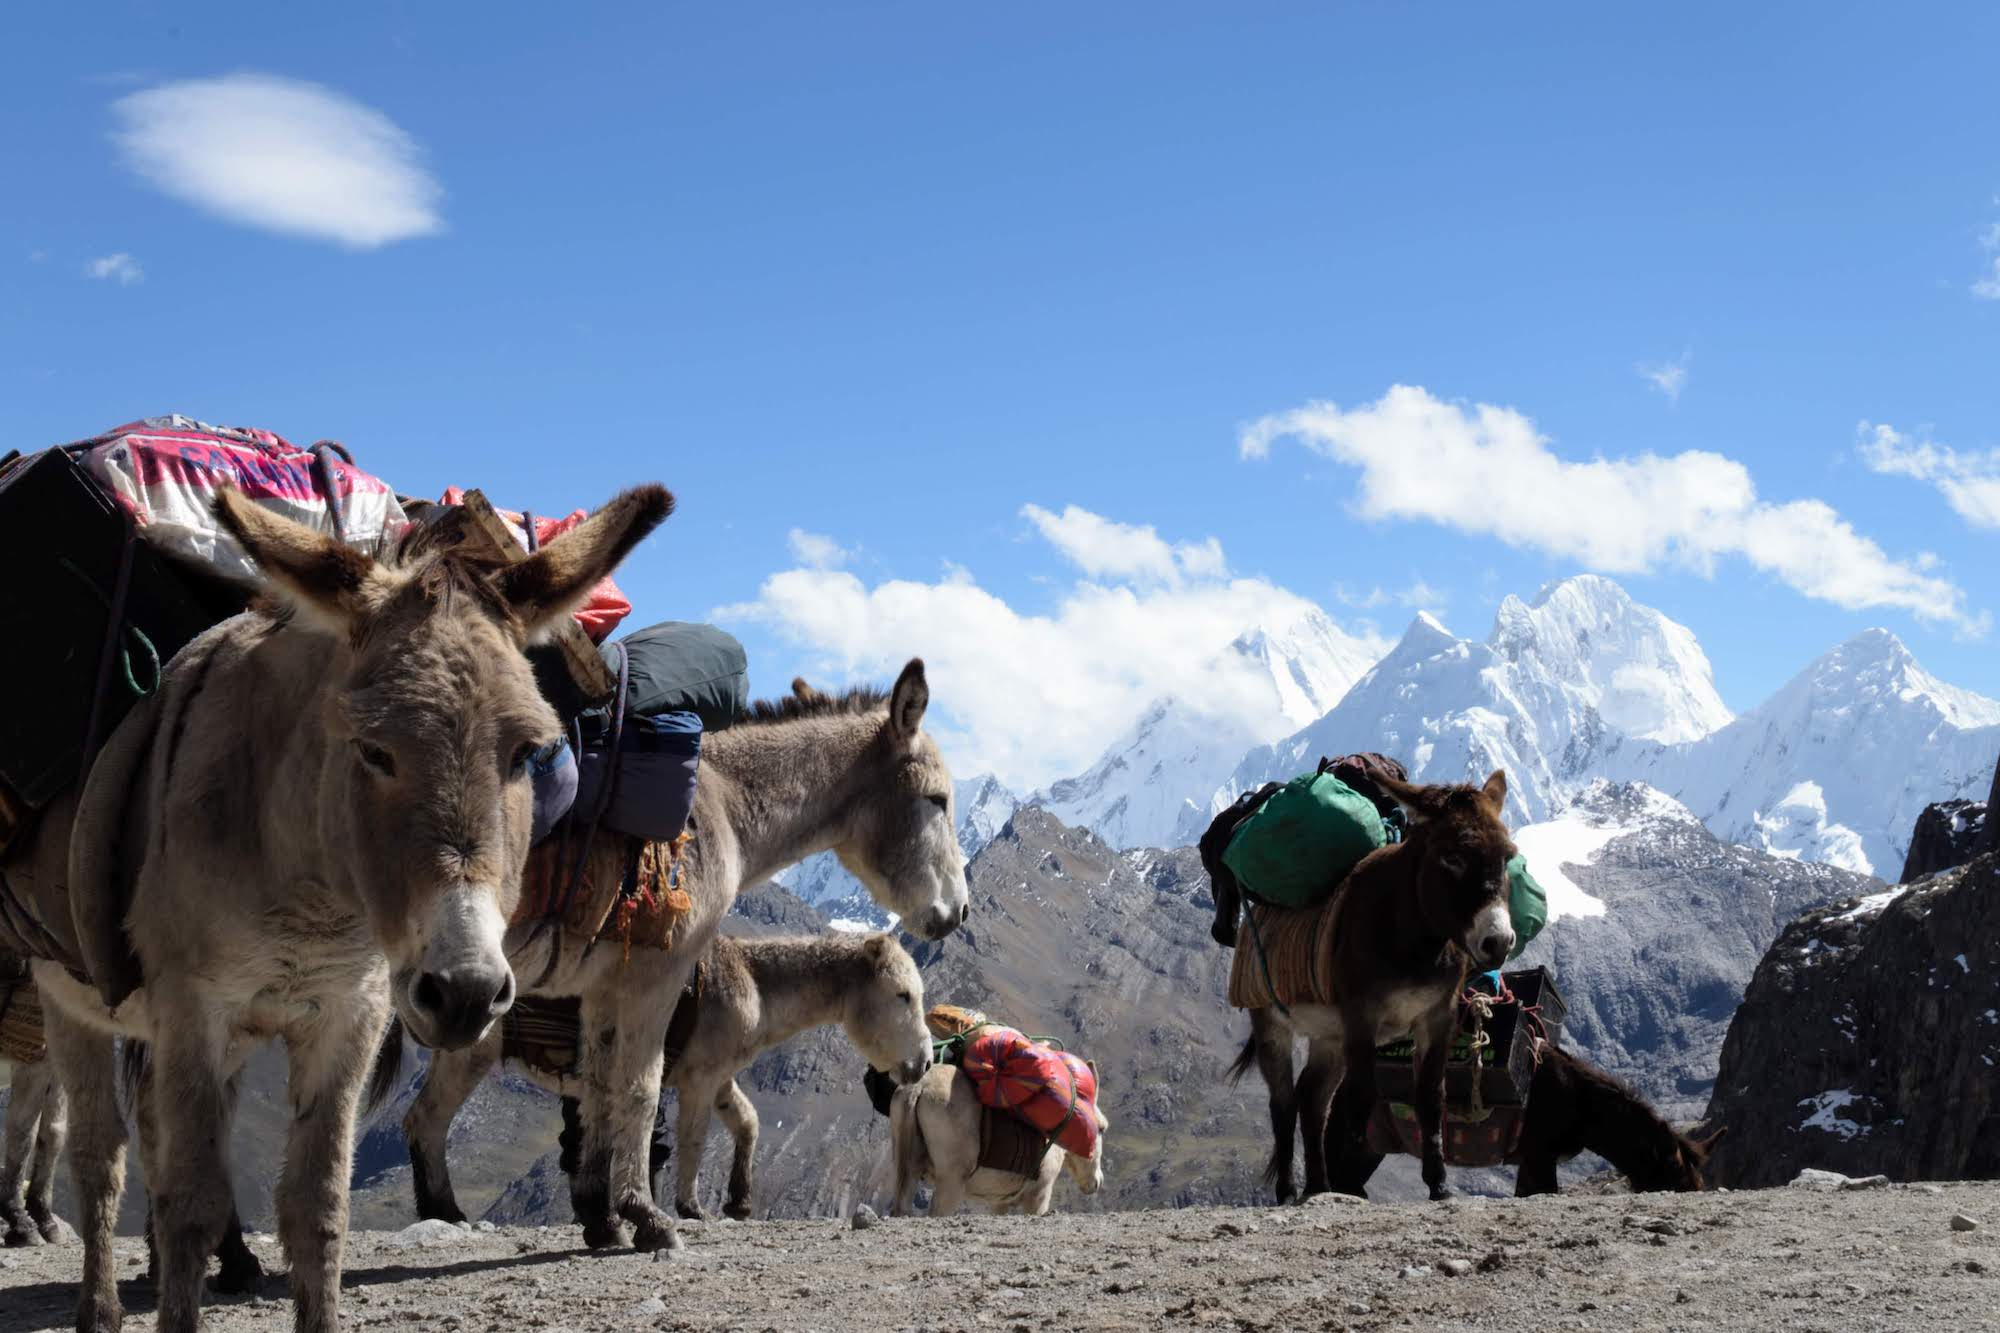 Donkeys resting while carrying supplies